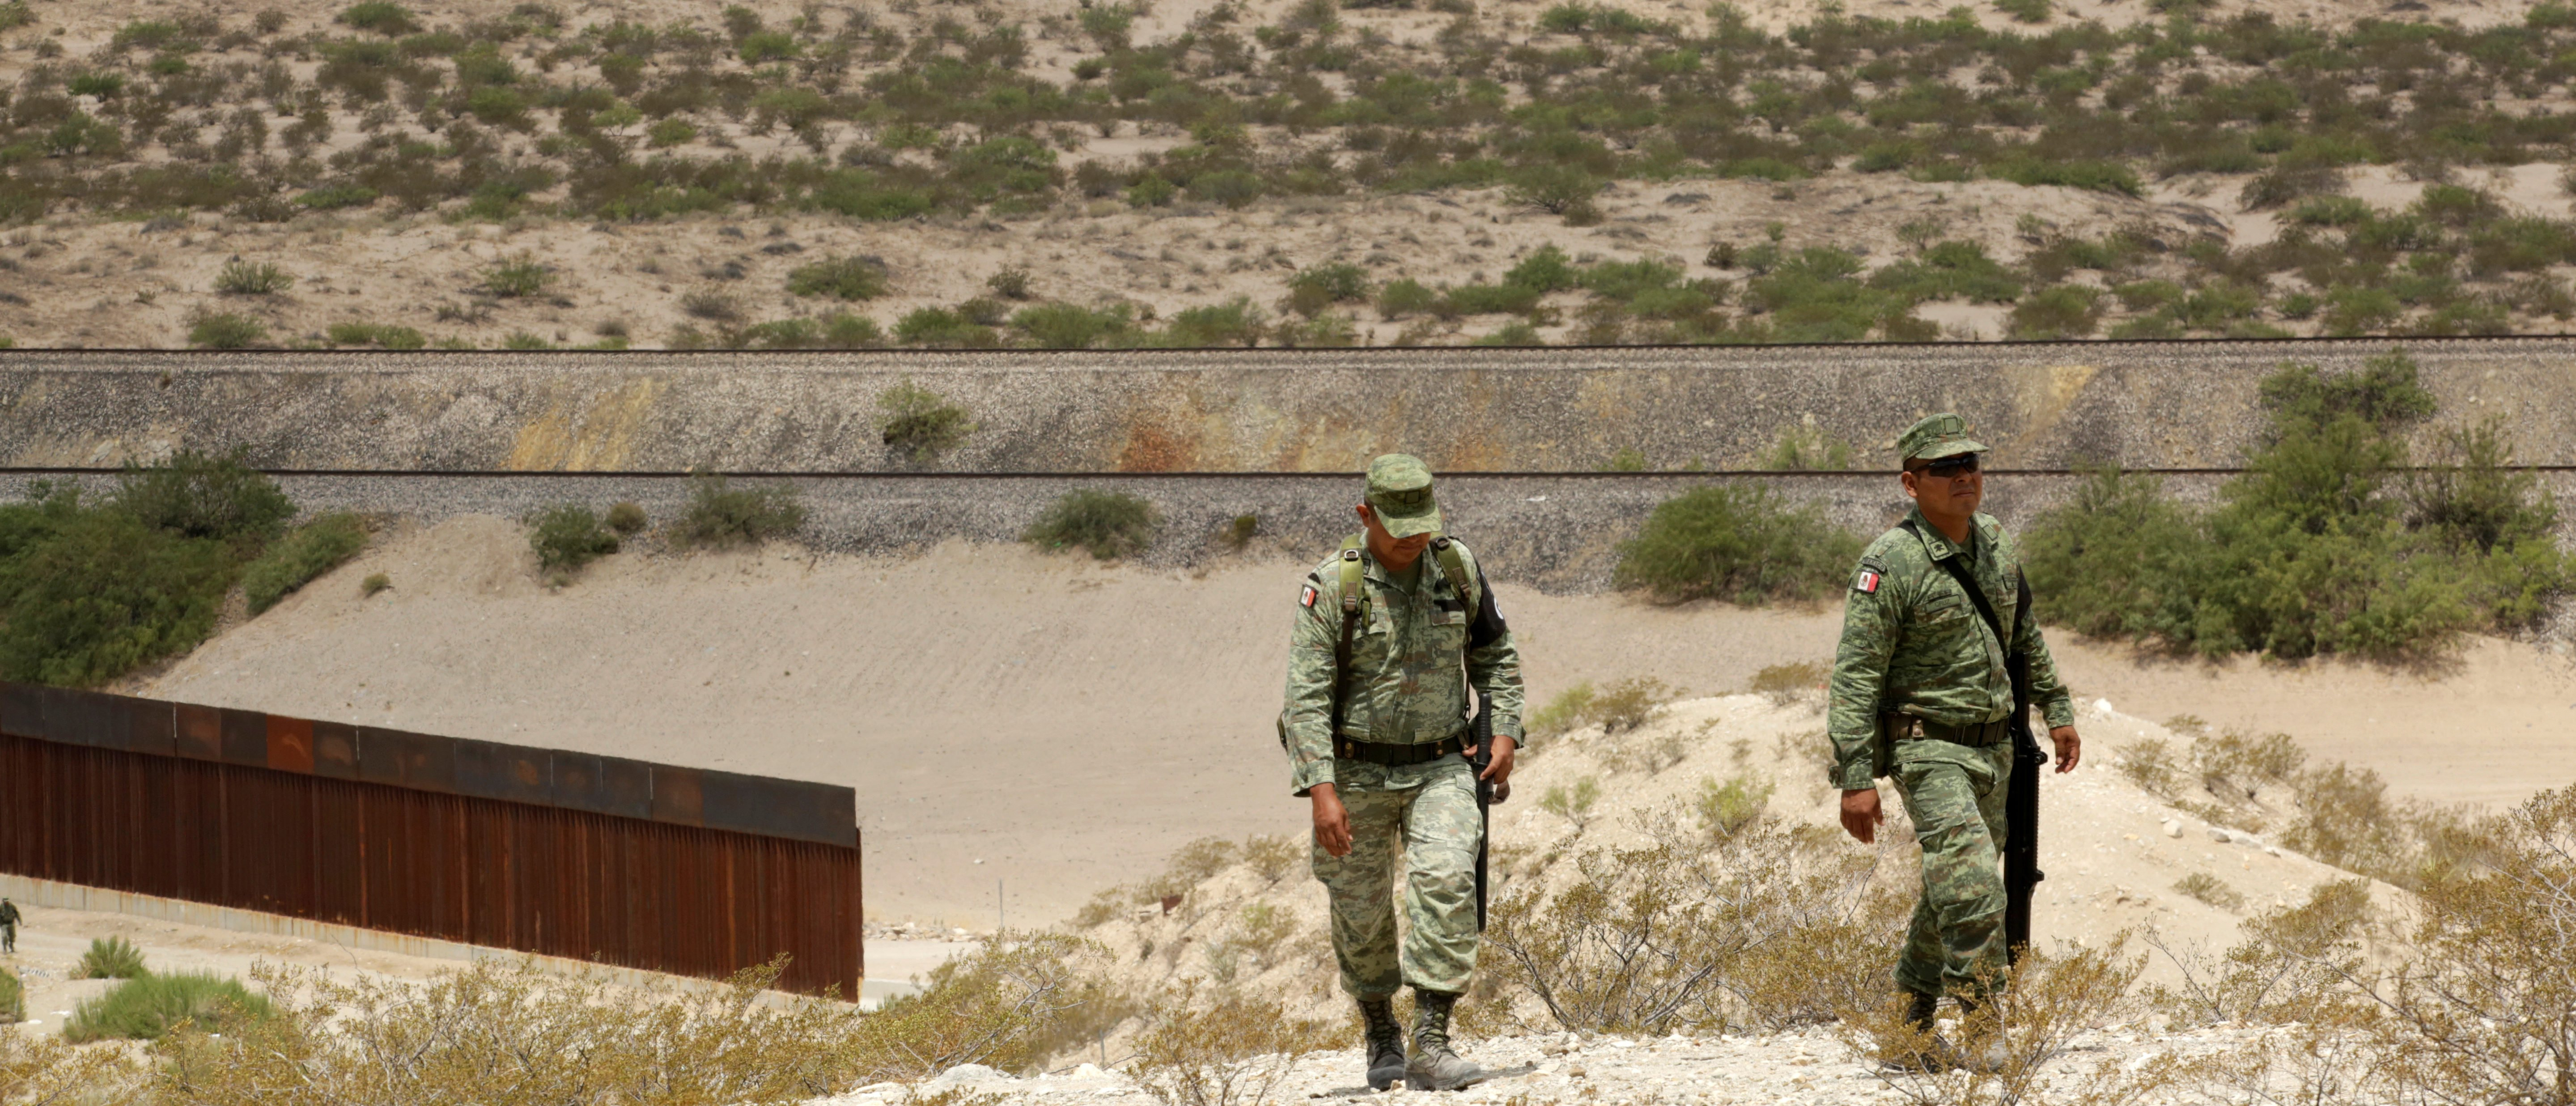 Members of the Mexican National Guard patrol the border with the United States, as seen from Anapra neighborhood, on the outskirts of Ciudad Juarez, Mexico, July 24, 2019. REUTERS/Jose Luis Gonzalez